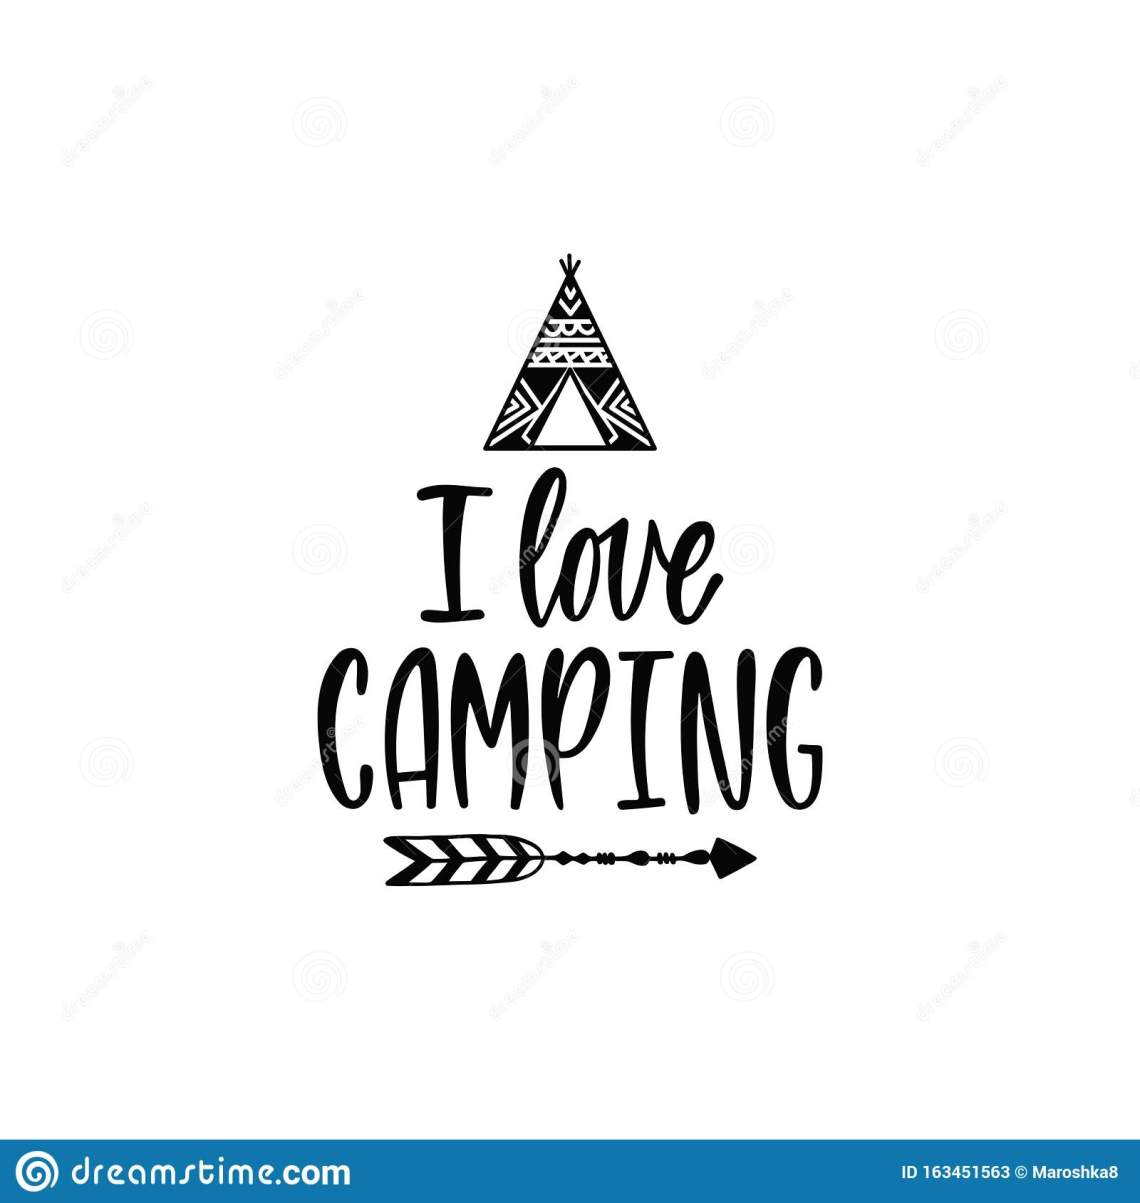 Download Inspirational Vector Lettering Phrase: I Love Camping ...